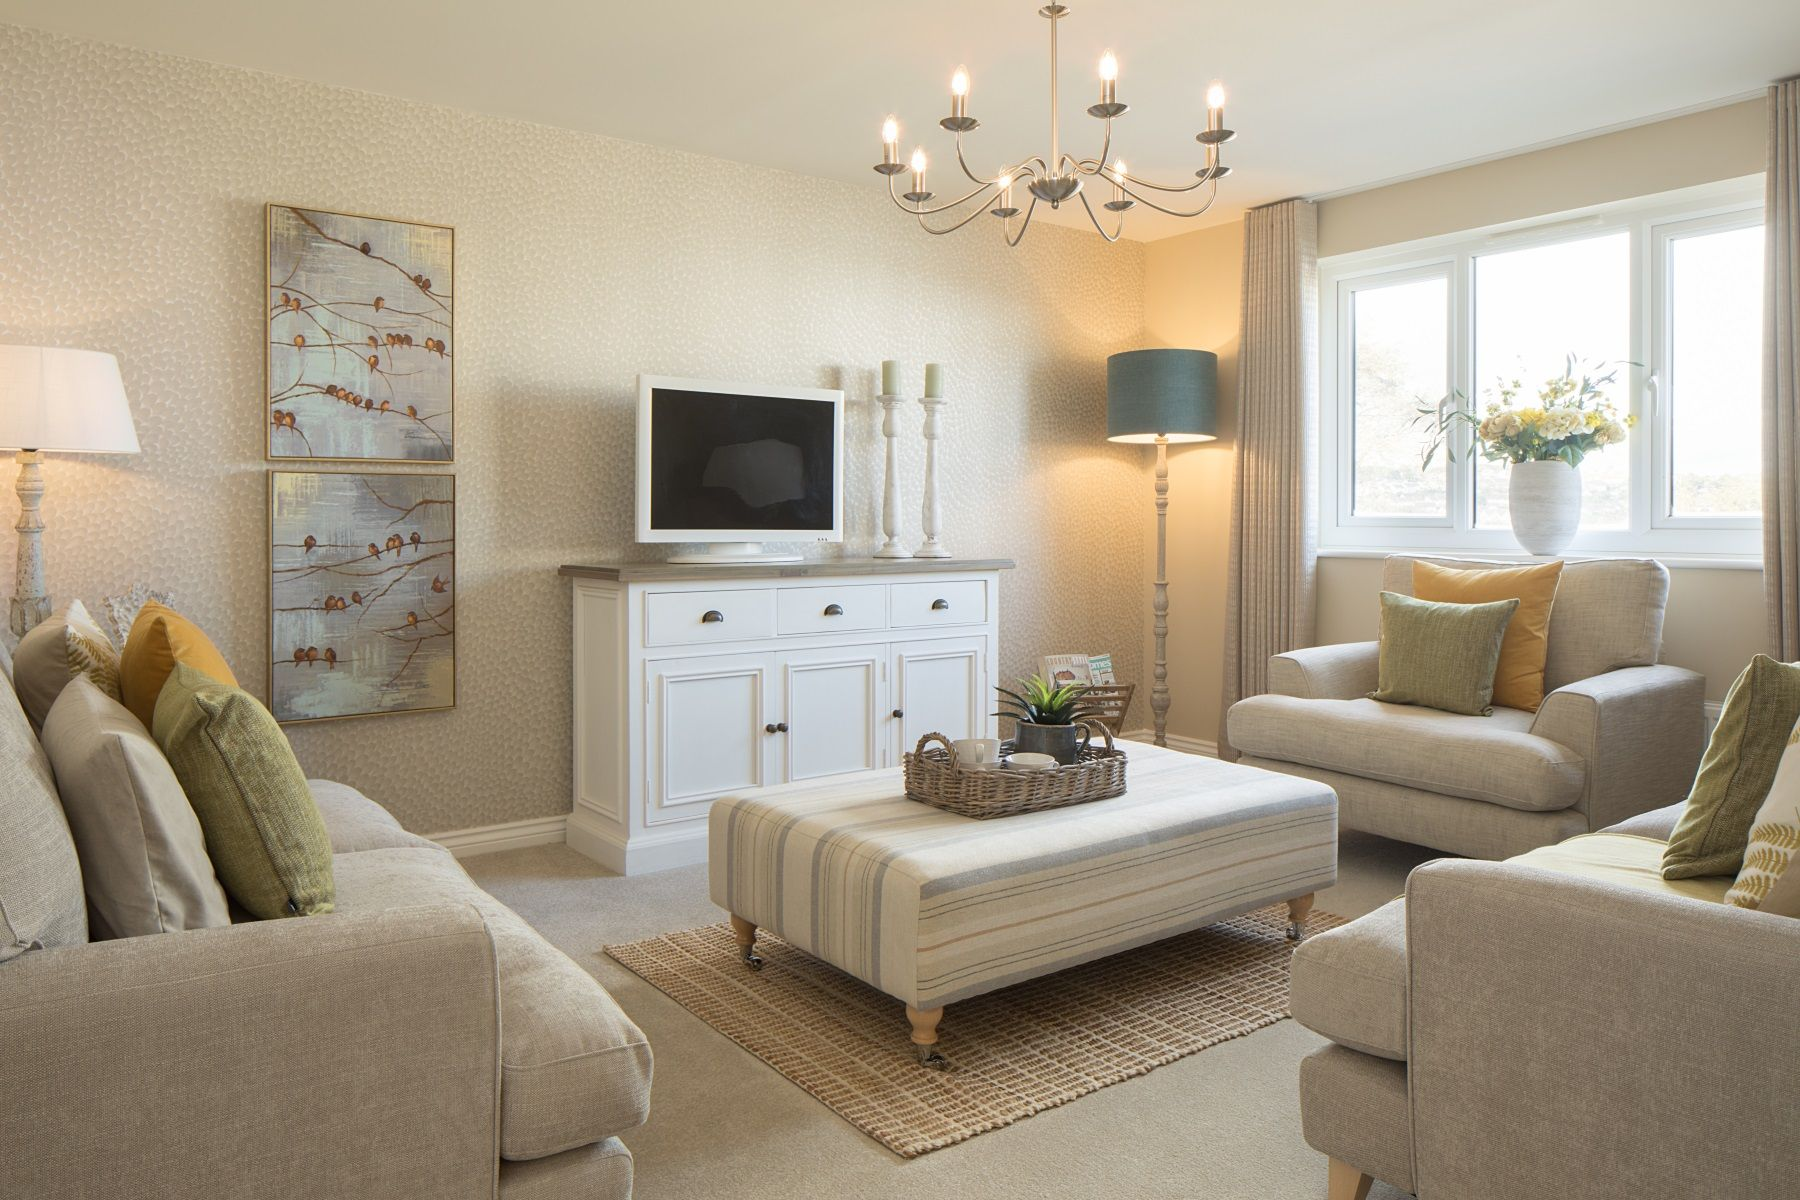 TW Exeter - Plumb Park - Midford example living room